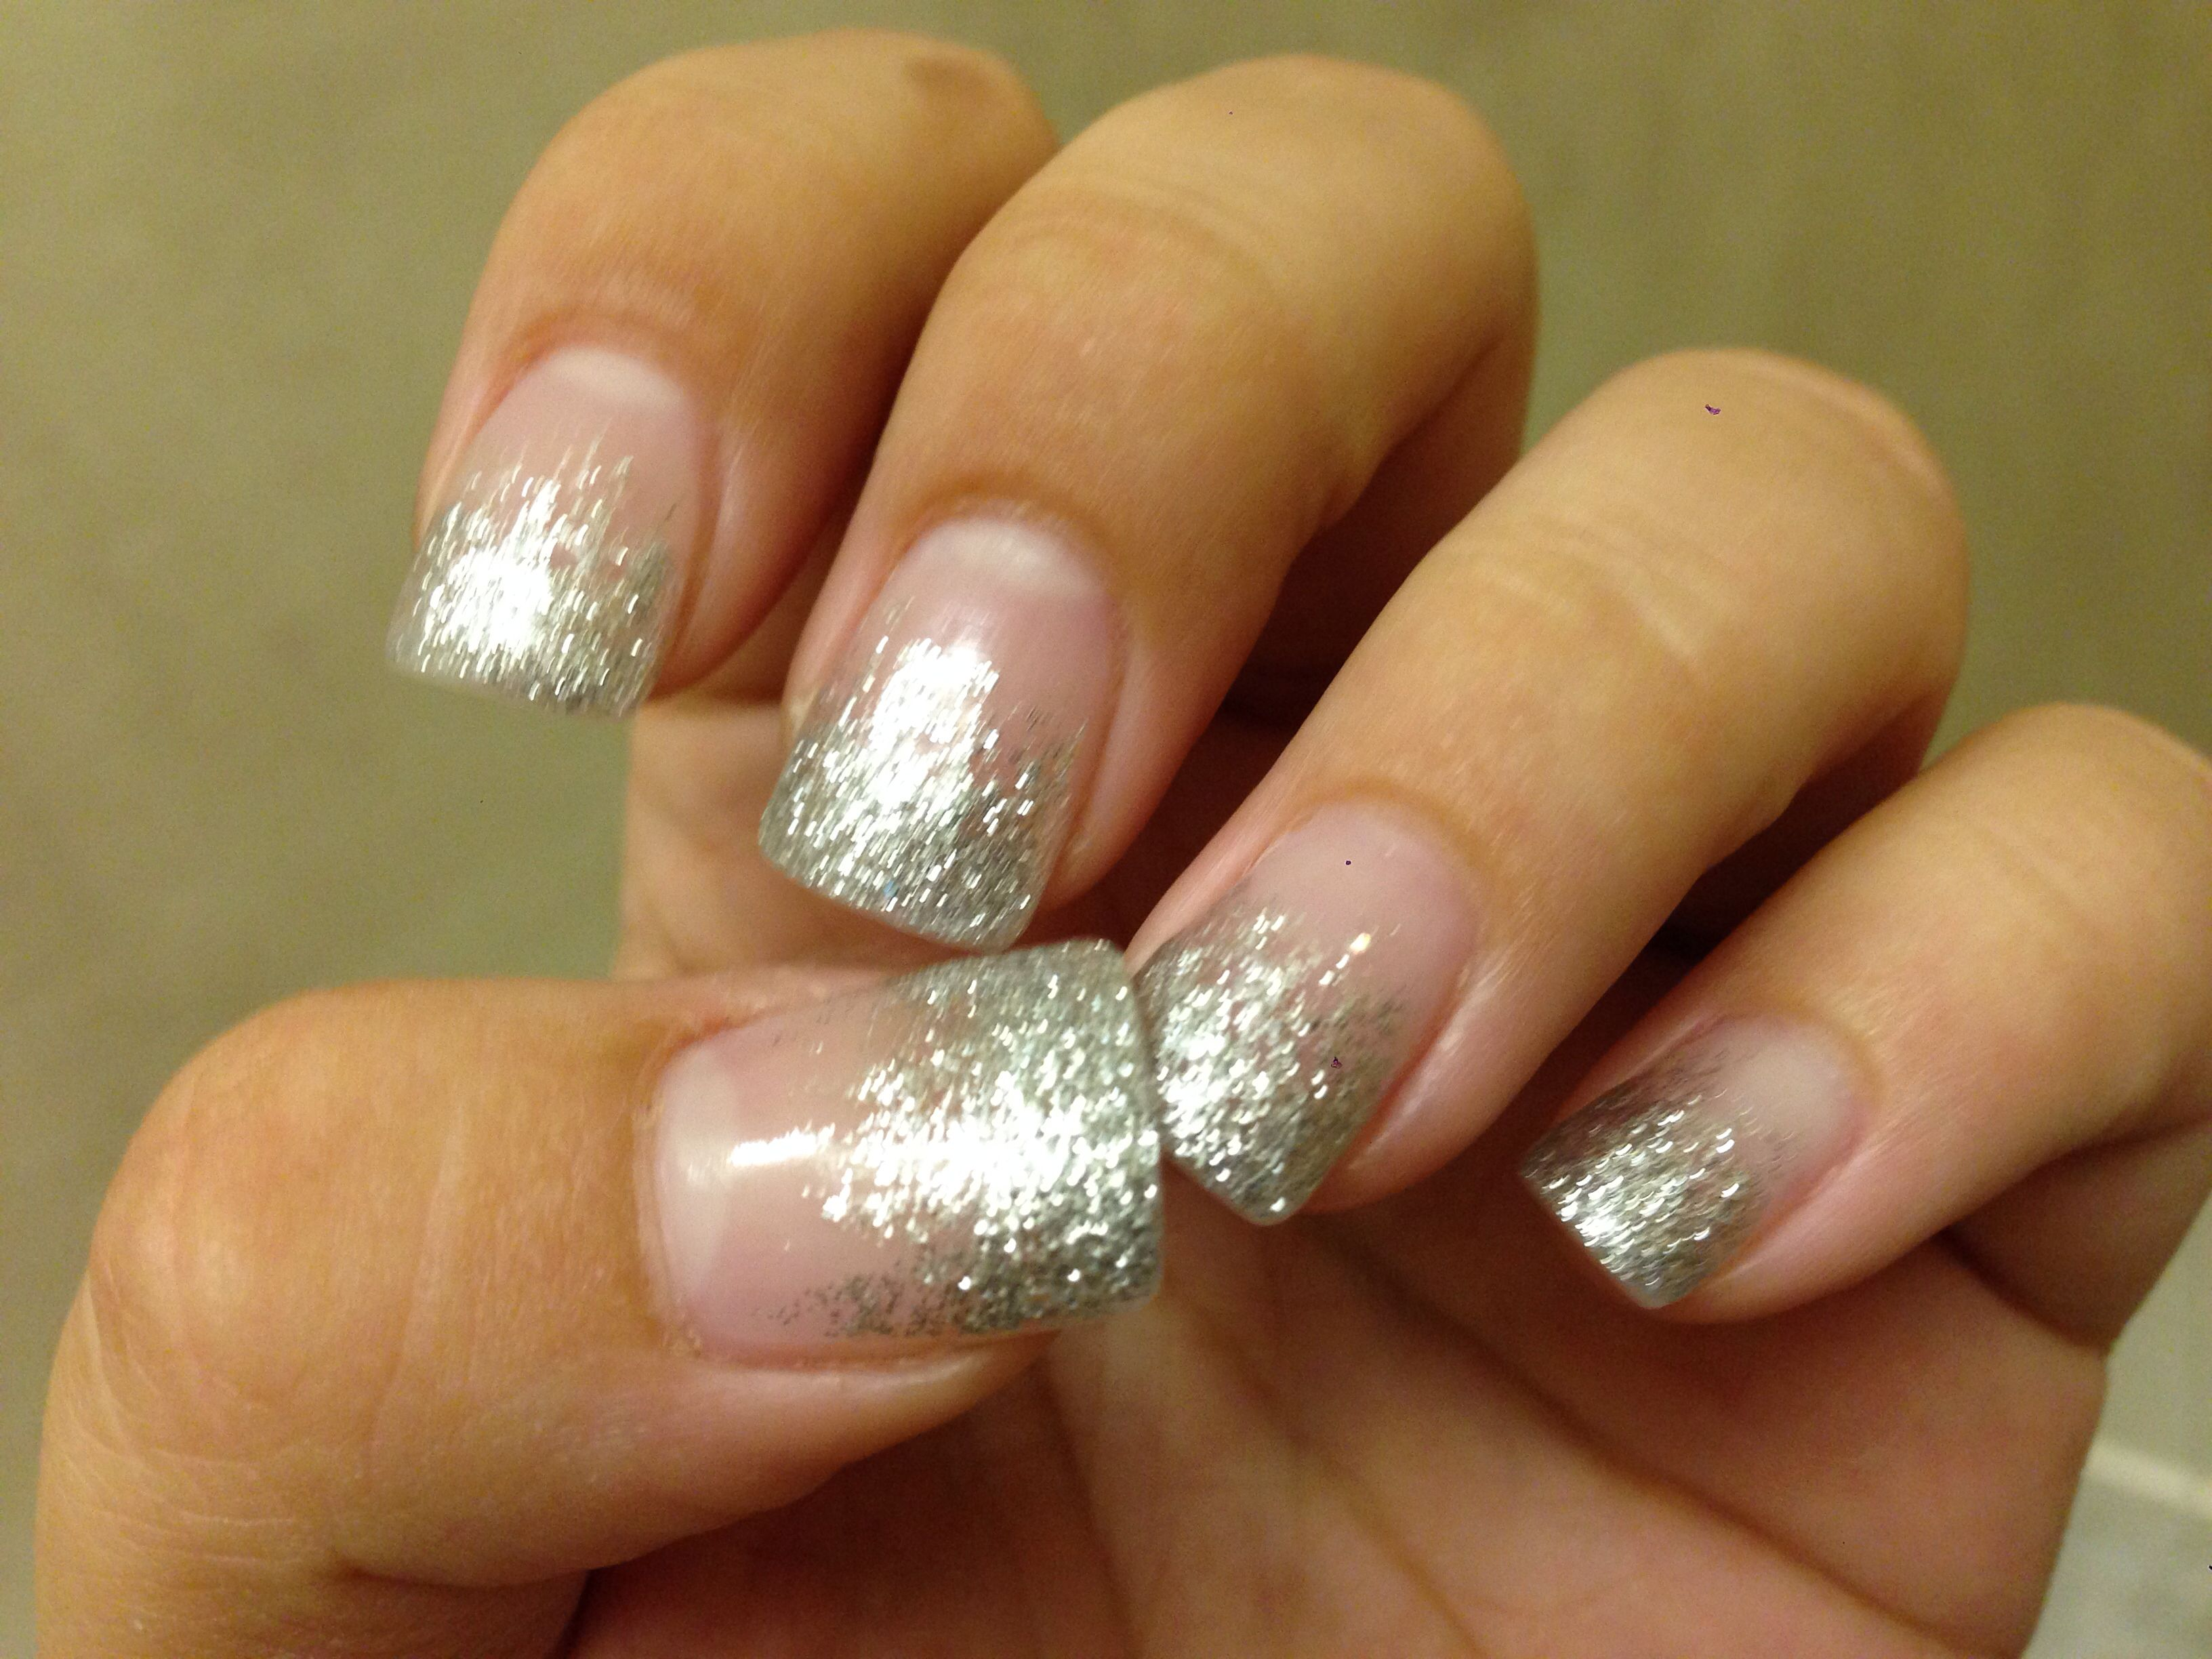 Sparkly French manicure. I wore these for prom! | Nails | Pinterest ...